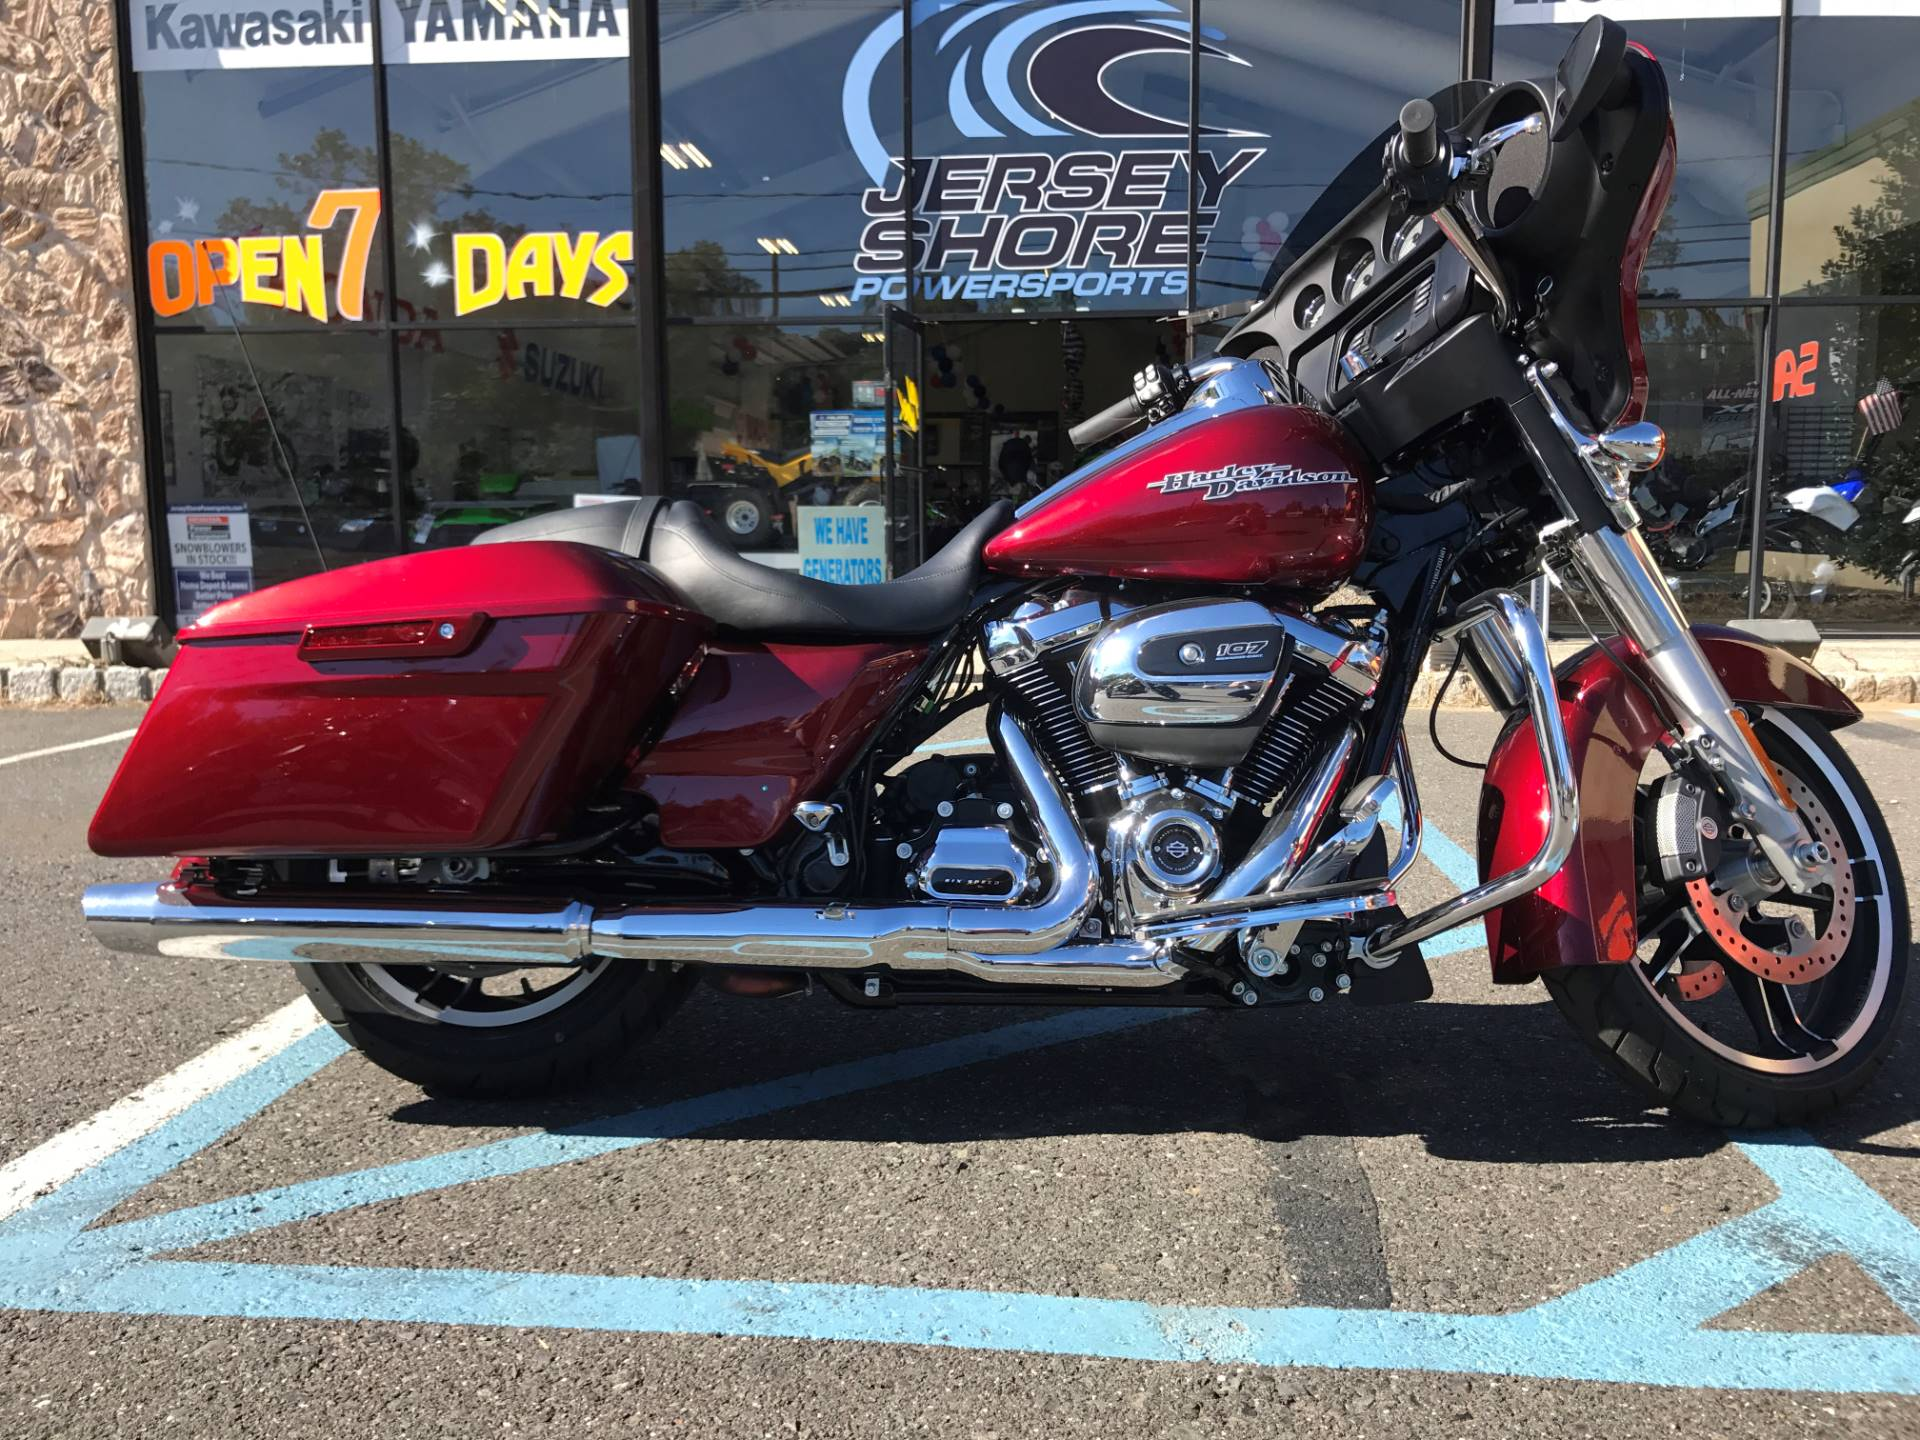 Used 2017 Harley Davidson Street Glide Motorcycles in Middletown